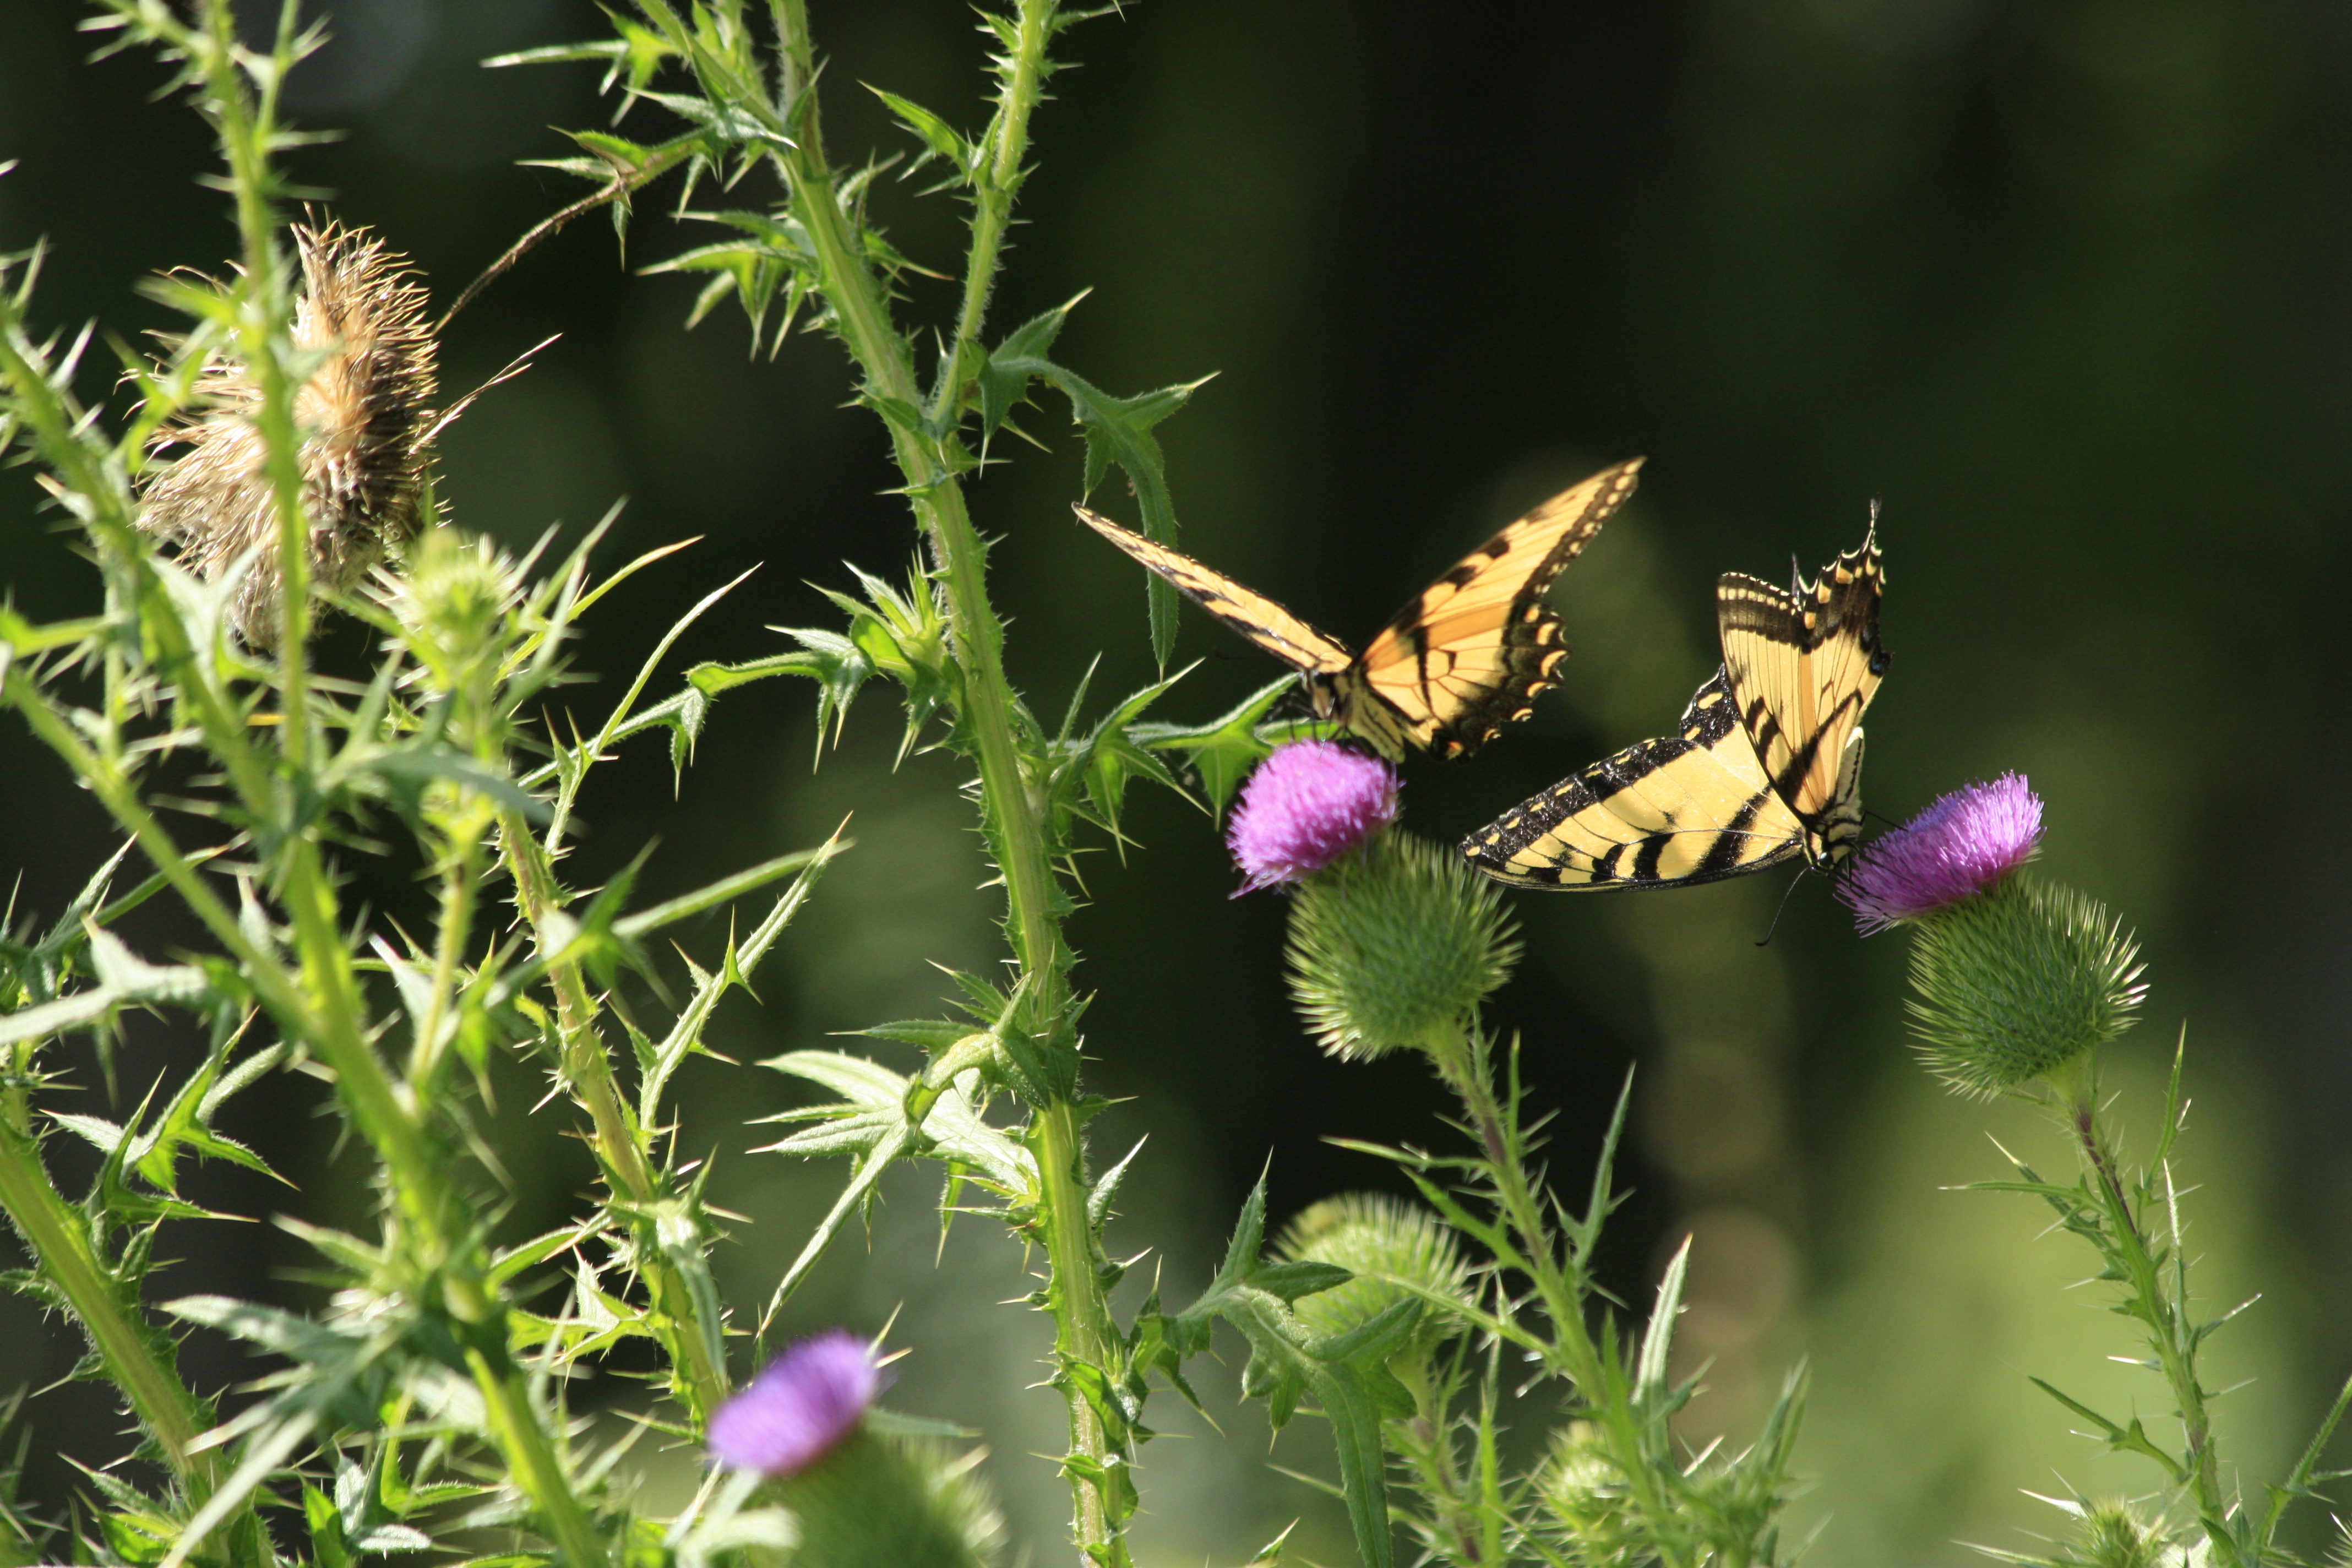 (2/2) These 2011 photos remind us what we might be able to capture on camera this summer. Photo: Leticia Shaddix, nature, wildlife, animal, plant, insect, butterfly, thistle